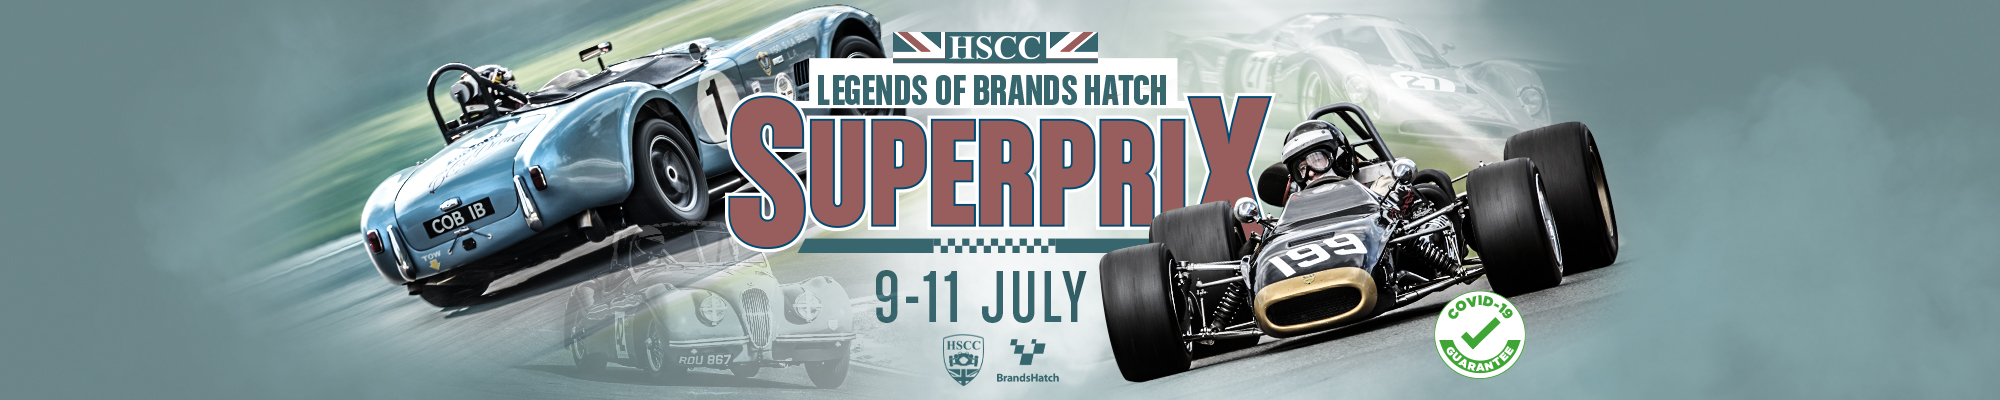 HSCC Legends of Brands Hatch Superprix